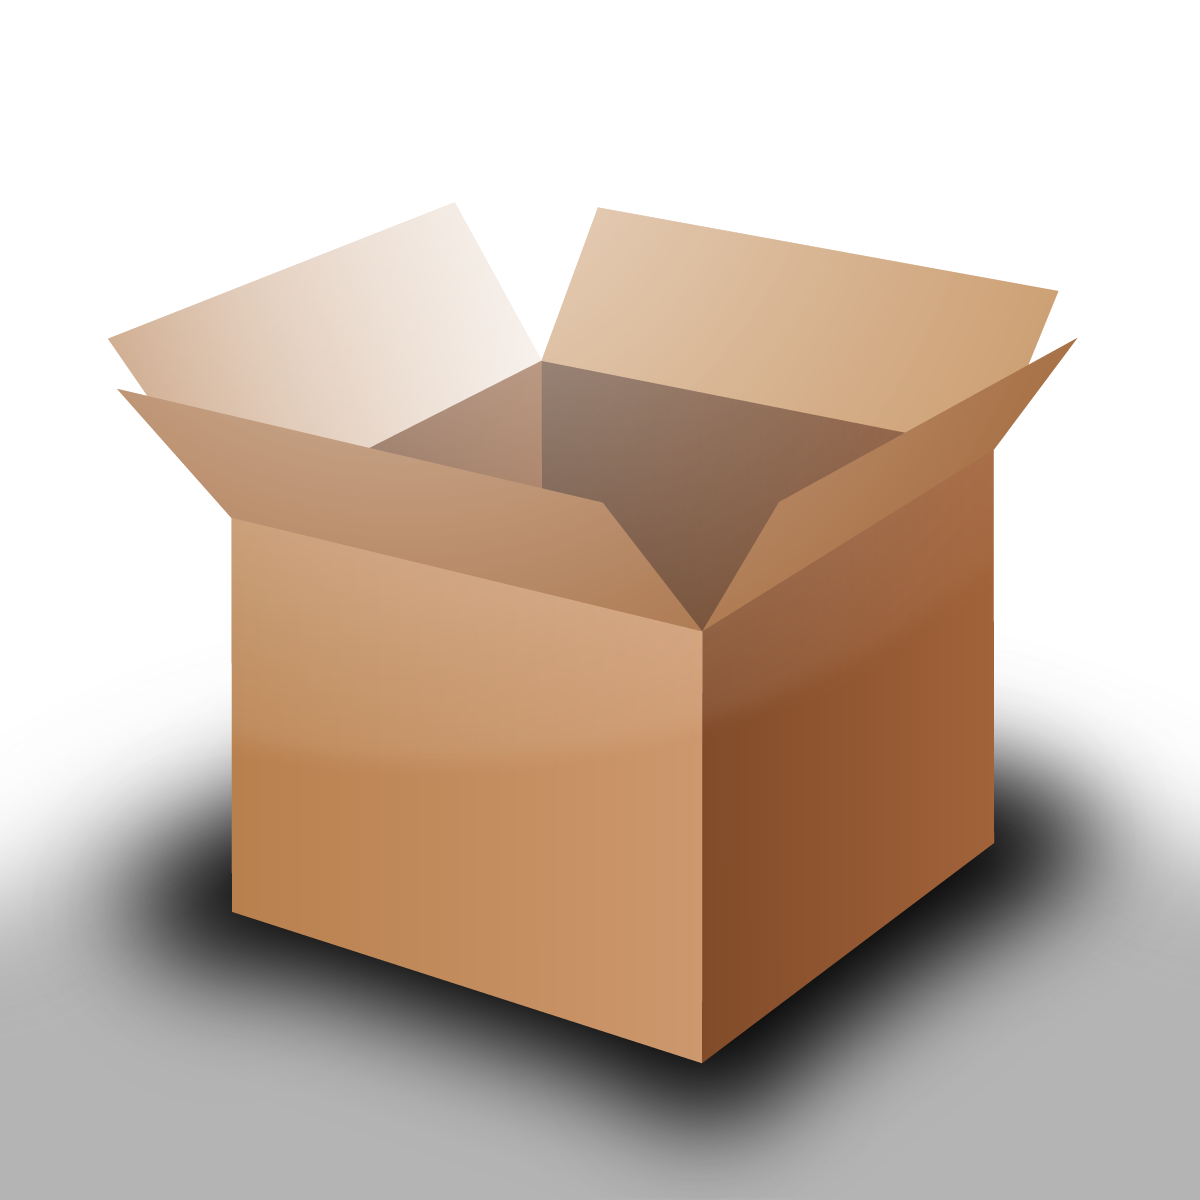 Boxes transparent png. File open cardboard box